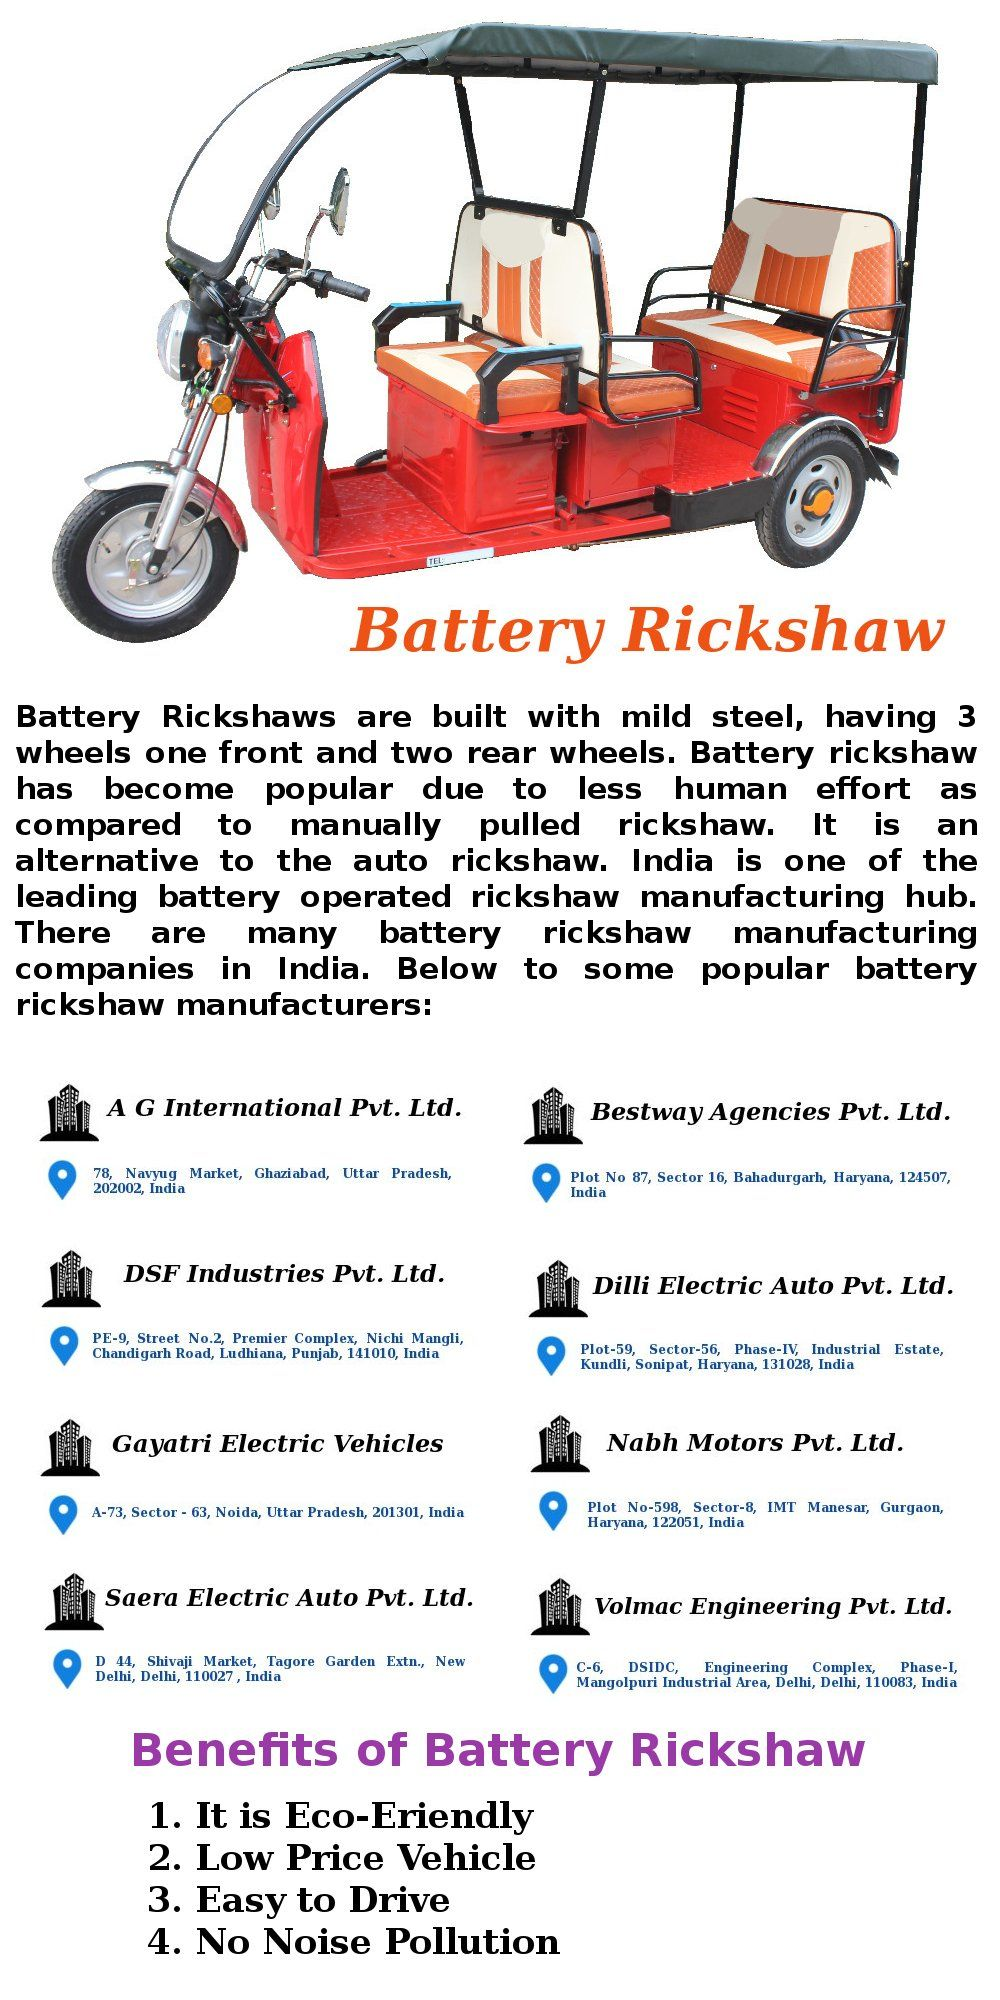 battery rickshaw manufacturing companies in india #batteryrickshaw